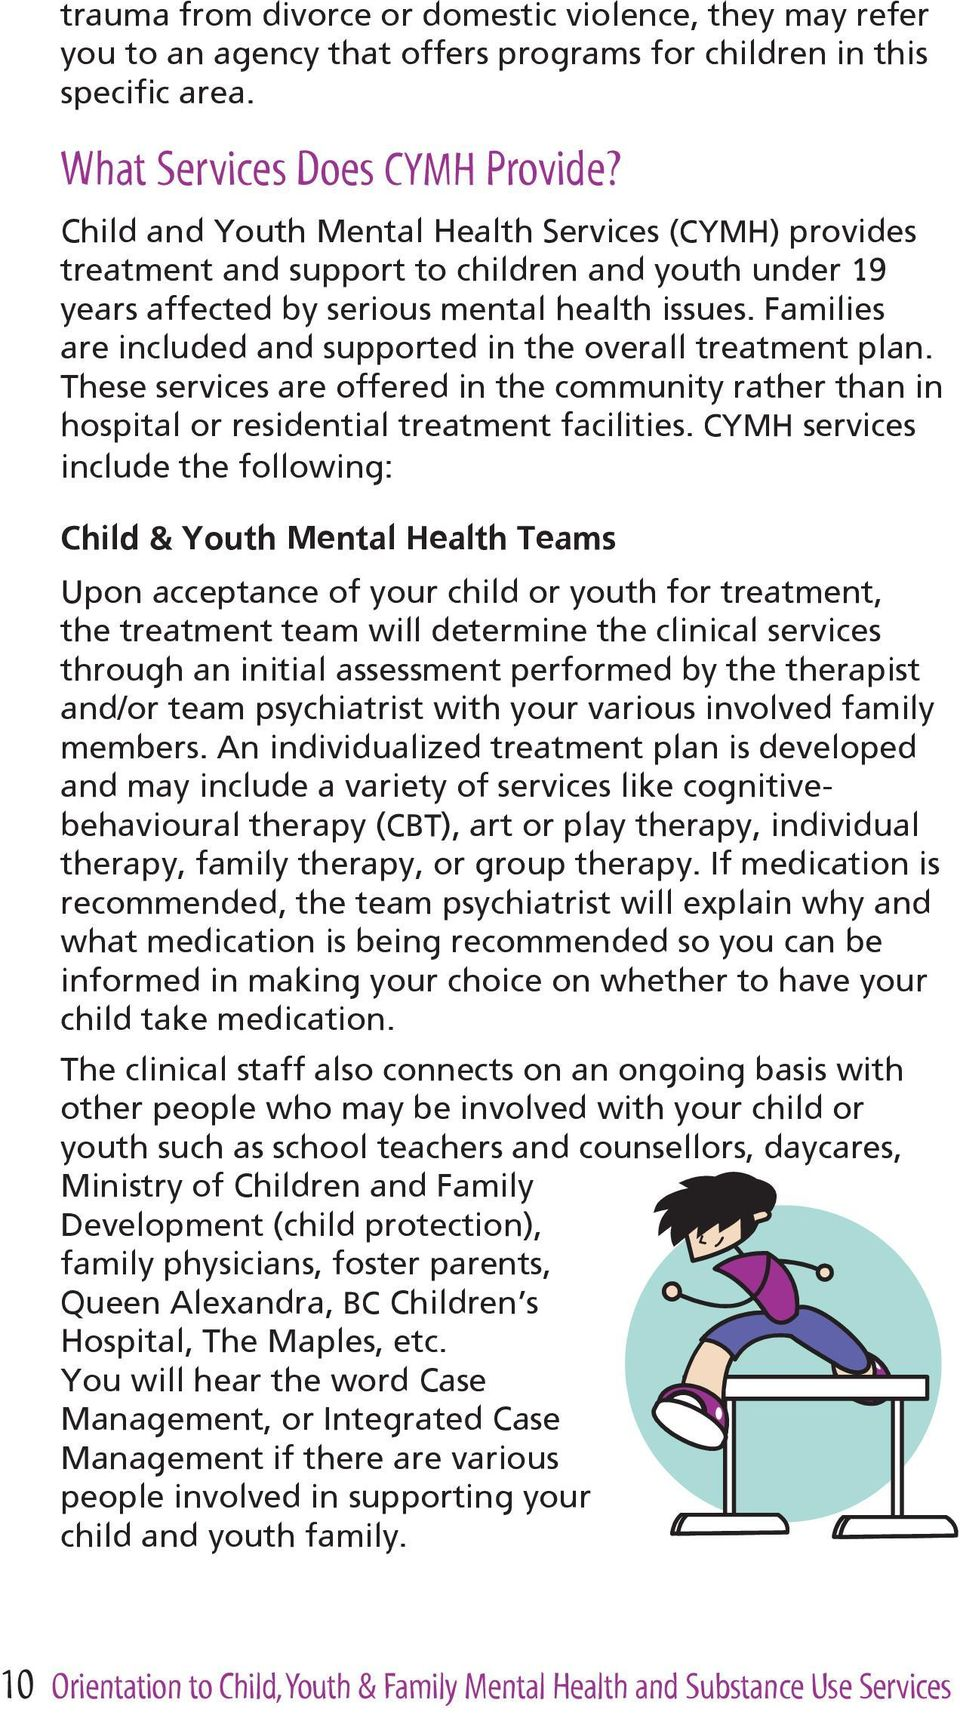 Families are included and supported in the overall treatment plan. These services are offered in the community rather than in hospital or residential treatment facilities.